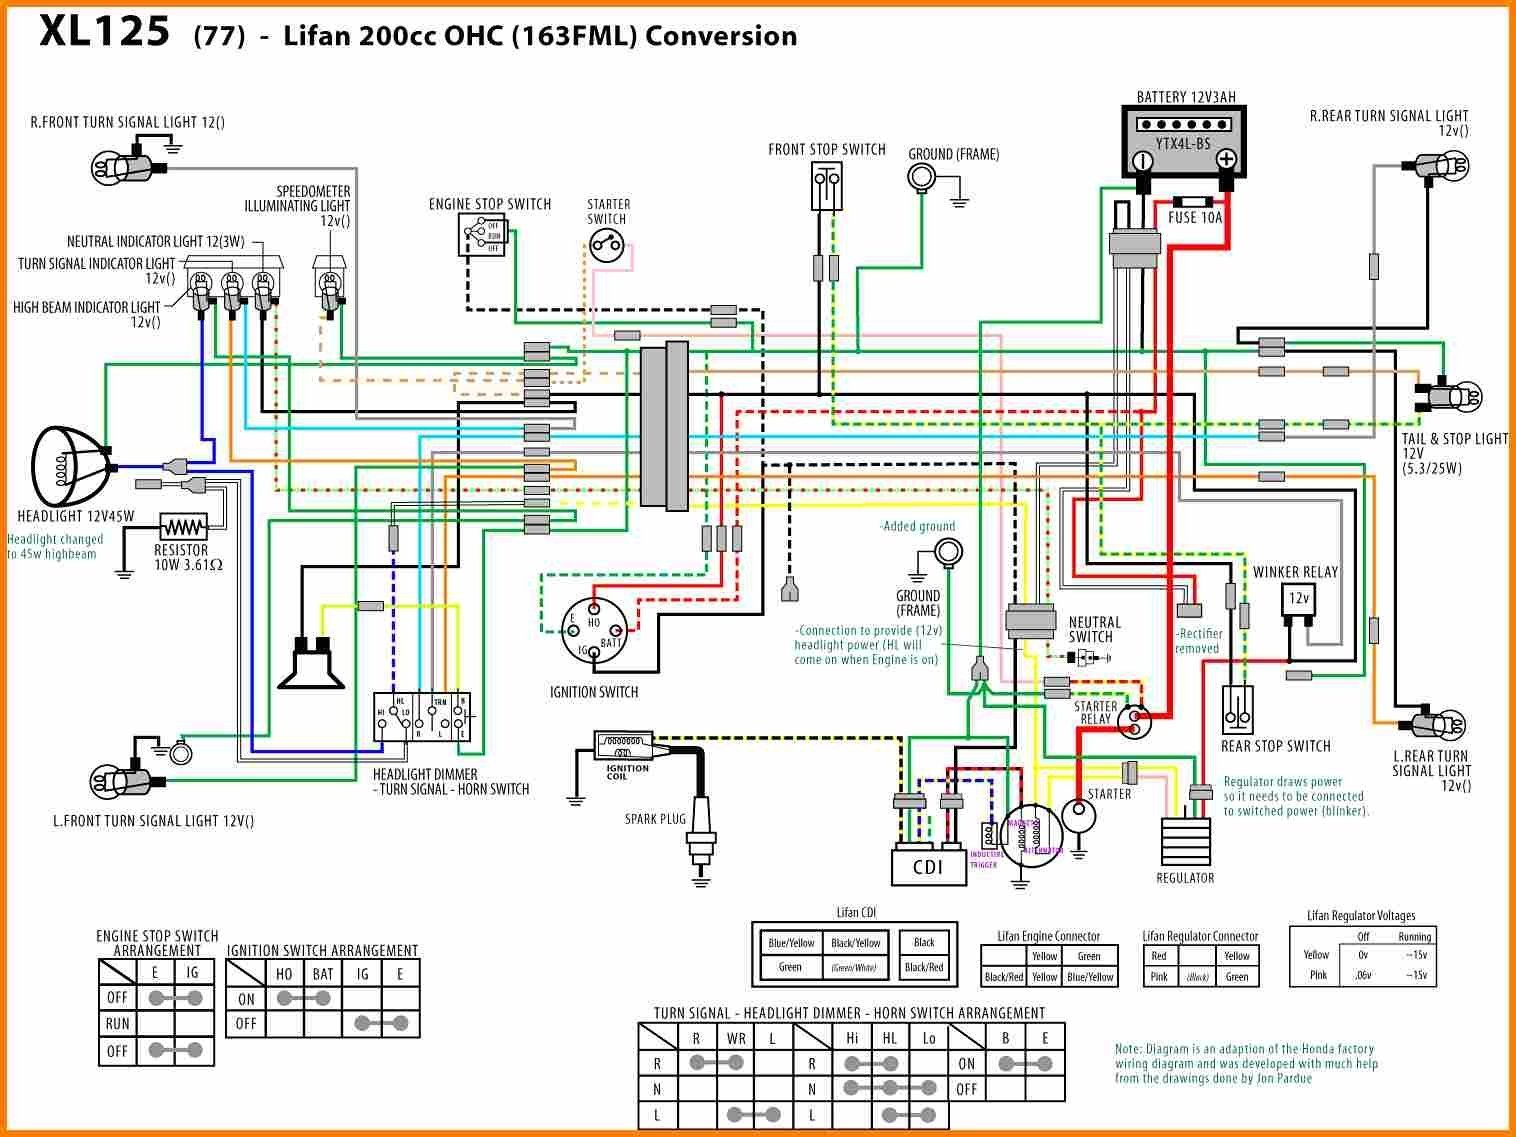 Lifan 110Cc Engine Diagram Lifan 125Cc Wiring Diagram - Wiring pertaining  to Lifan 125 Wiring Di… | Motorcycle wiring, Electrical diagram, Electrical  wiring diagramPinterest